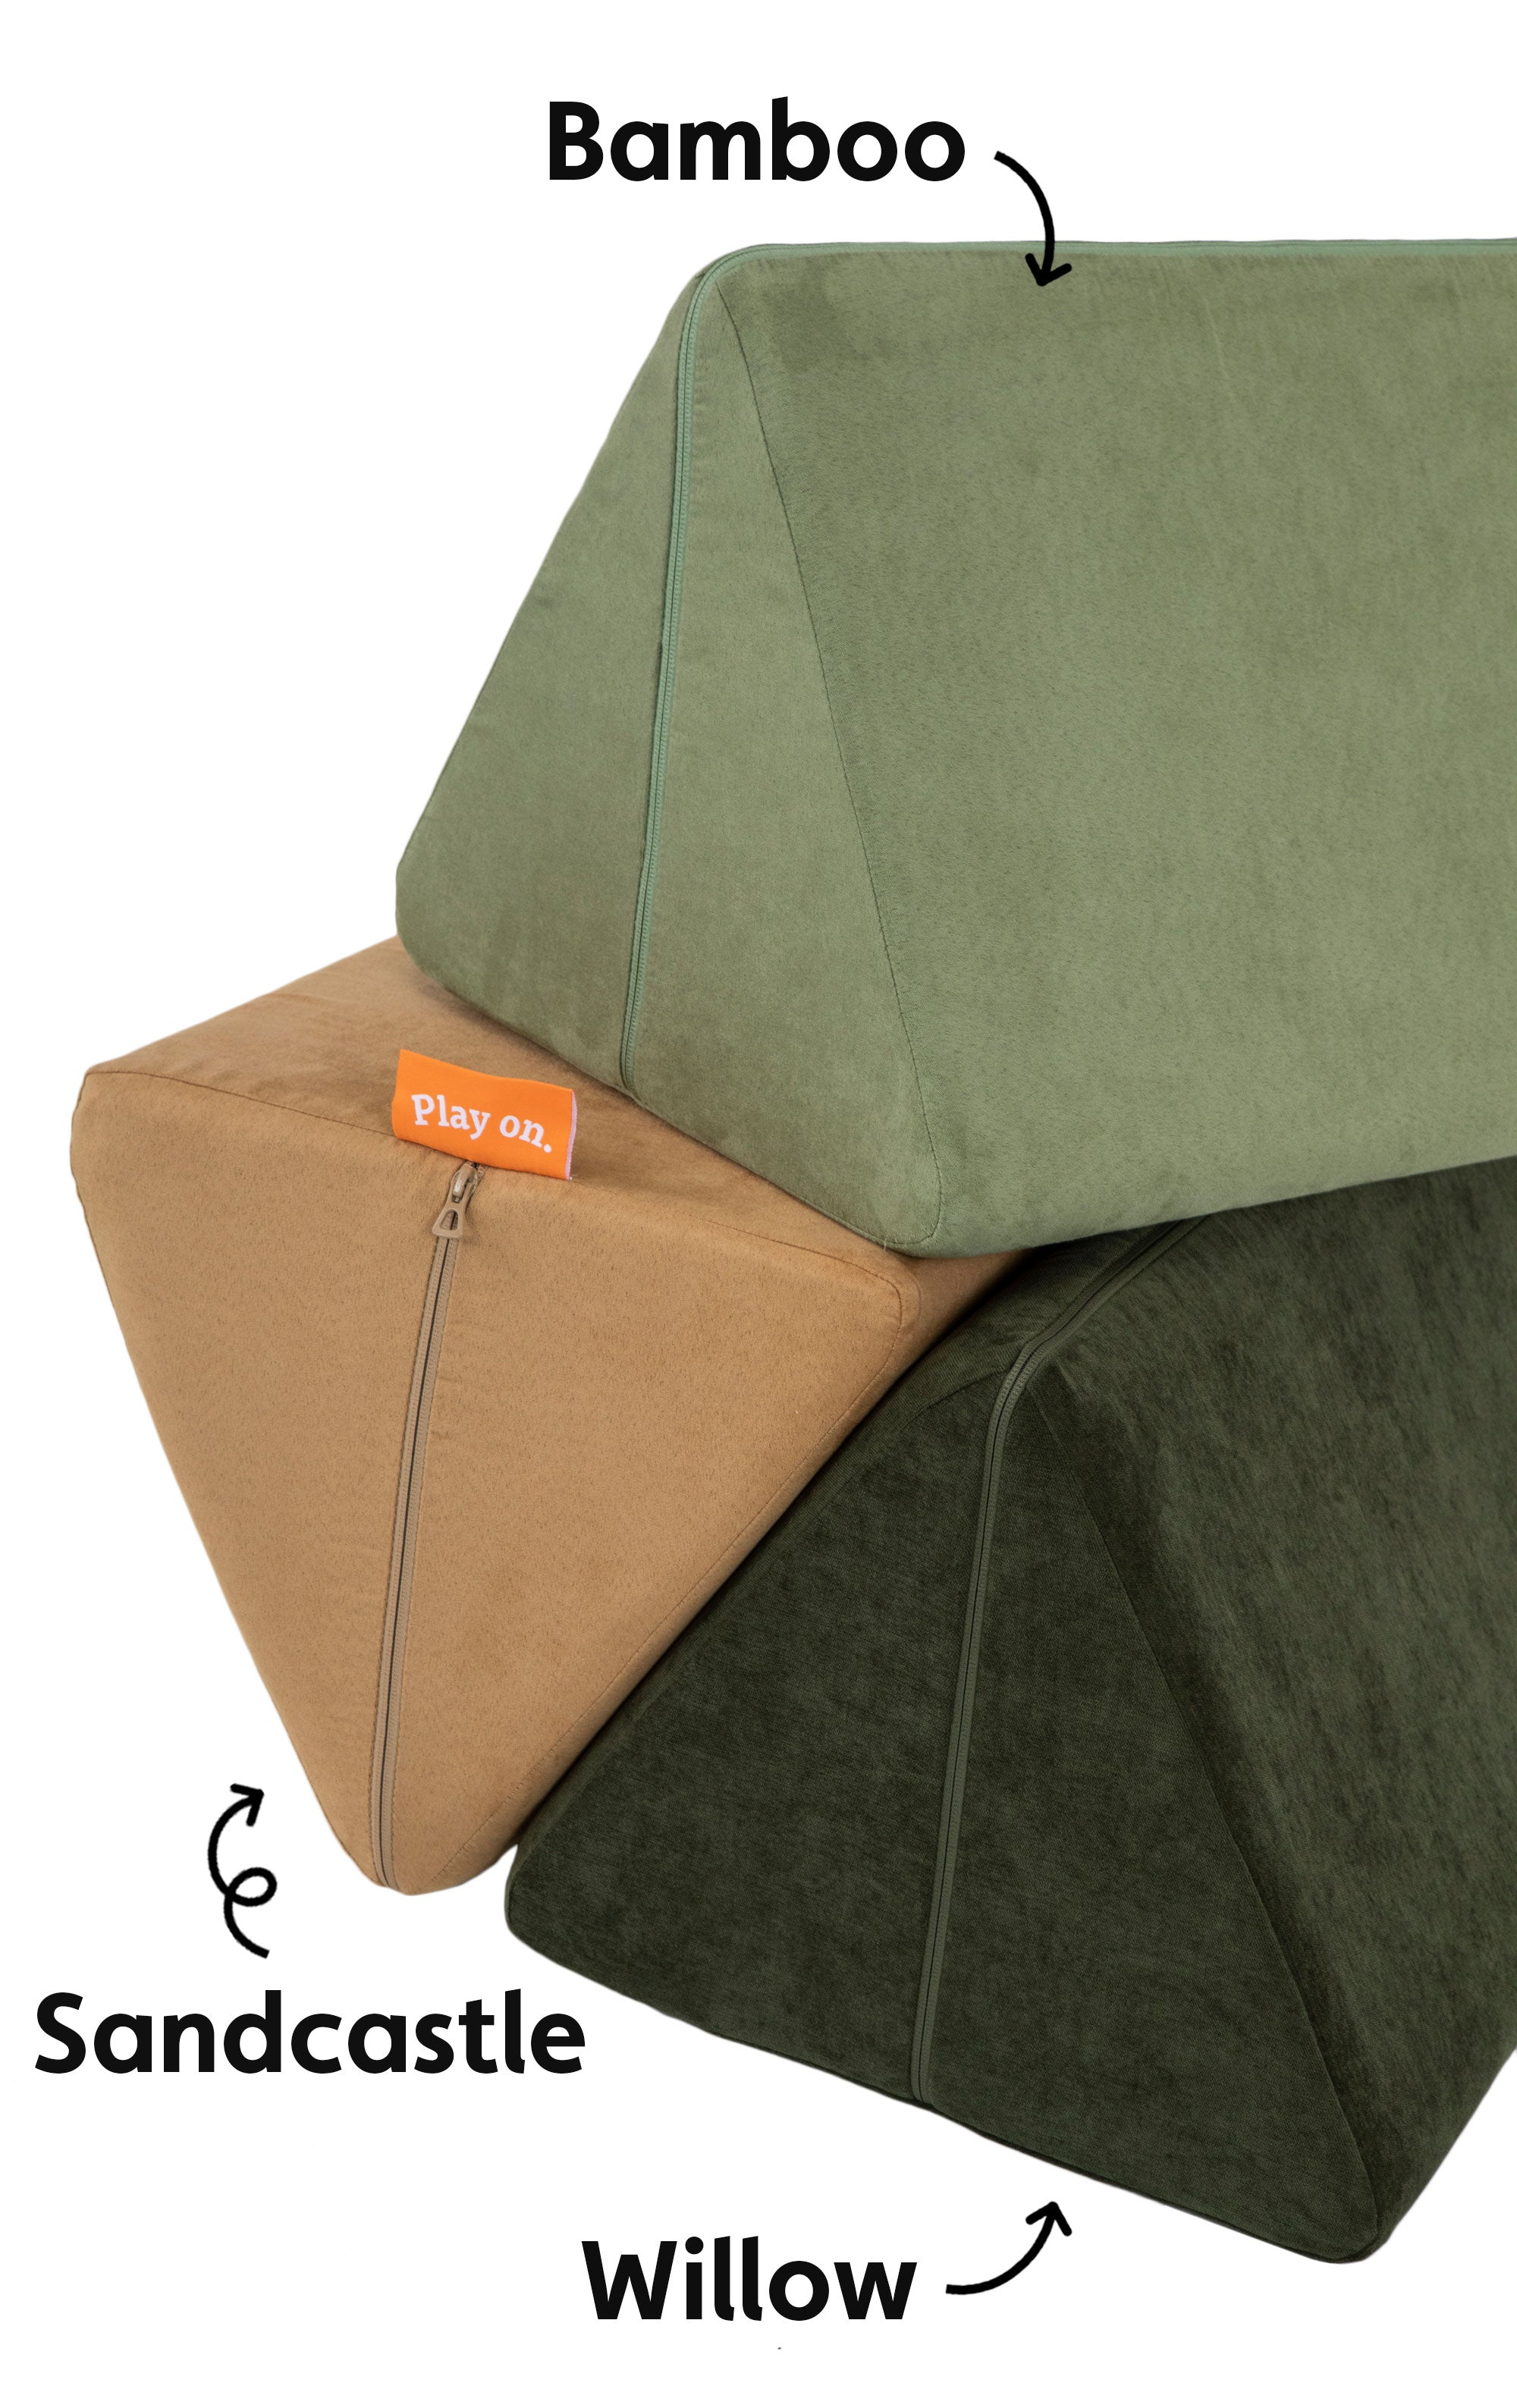 Sandcastle, Bamboo, and Willow Nugget pillows configured together for a color comparison photo